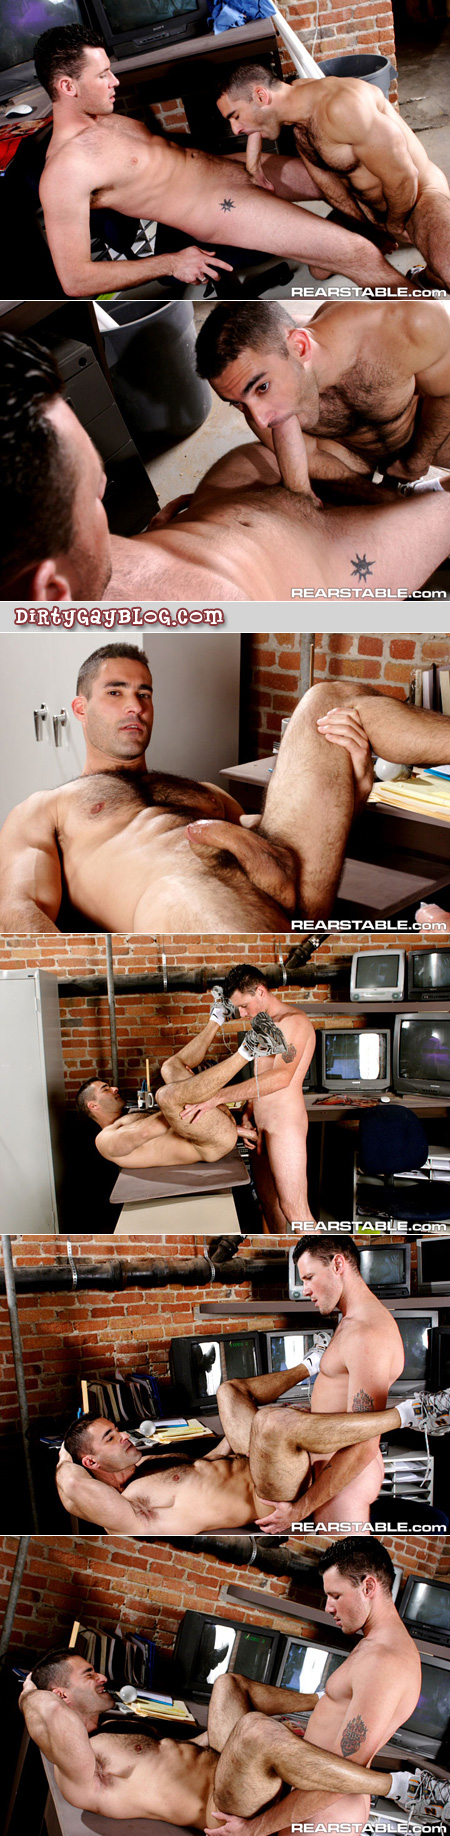 Super hung white guy uses his extra big dick to fuck a hairy, muscular Italian guy in nothing but his sneakers.